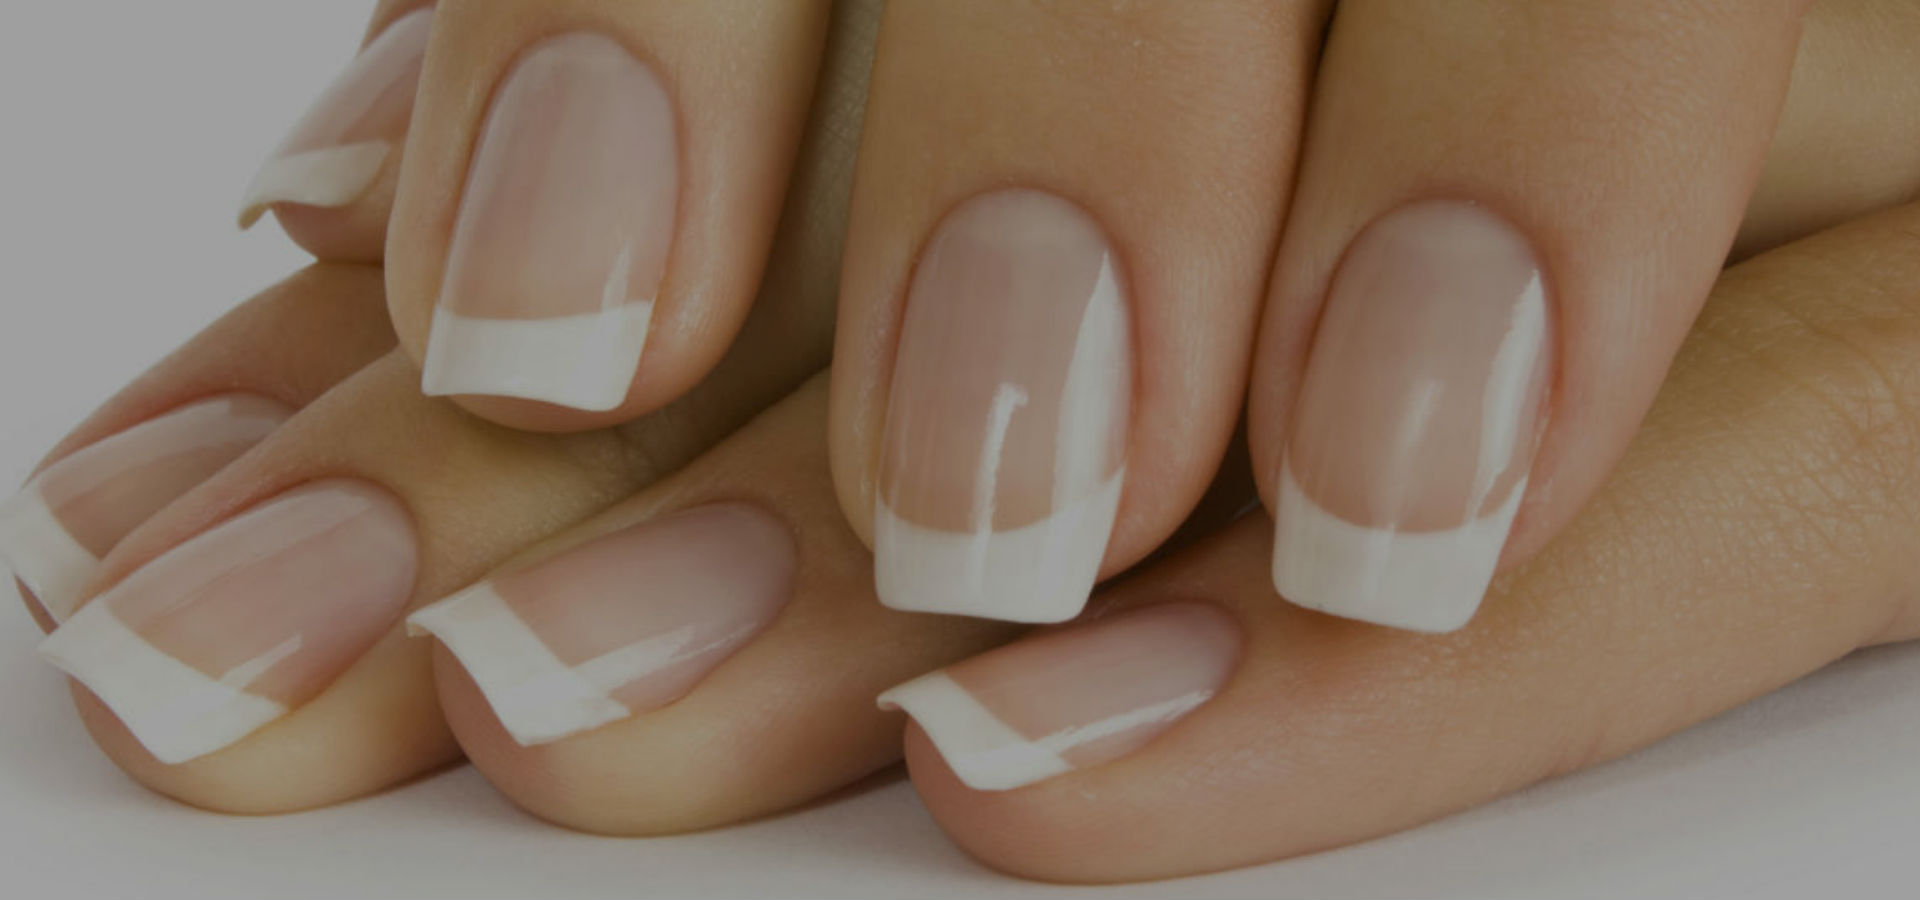 Stylish, Chic Nail Treatments in Standish & Wigan